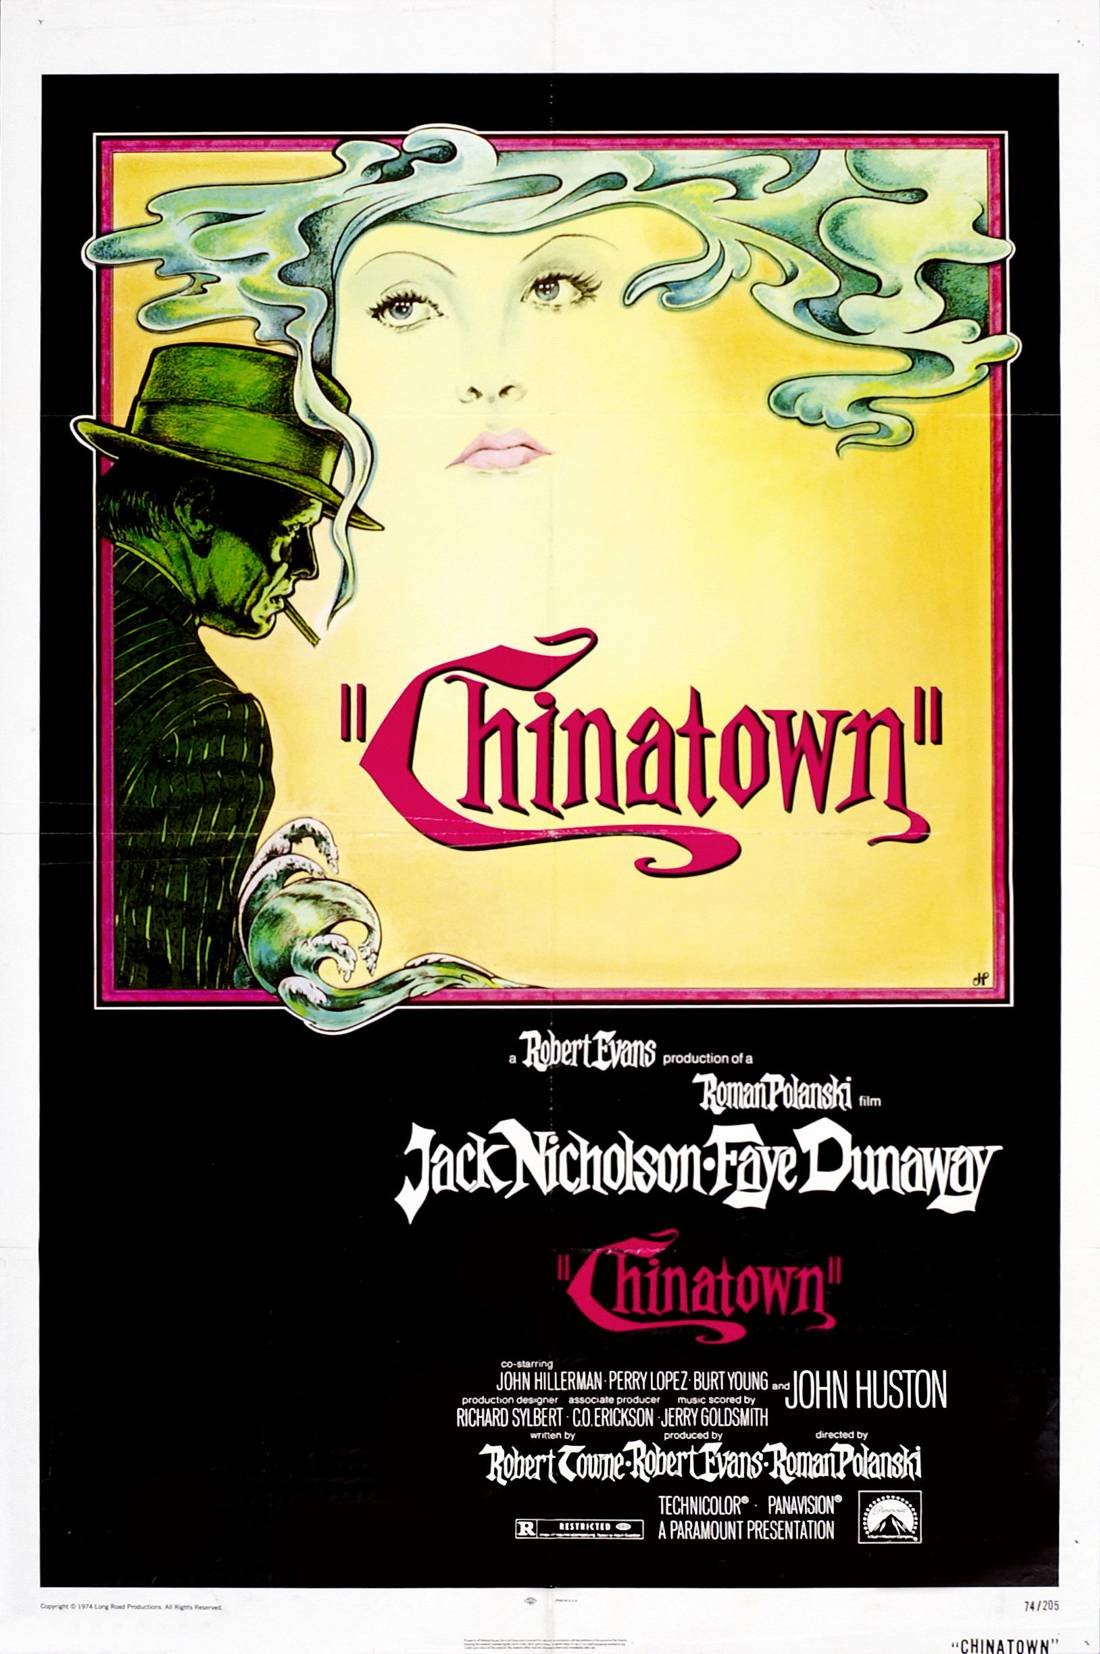 http://www.dvdclassik.com/upload/images/affiches/chinatown.jpeg